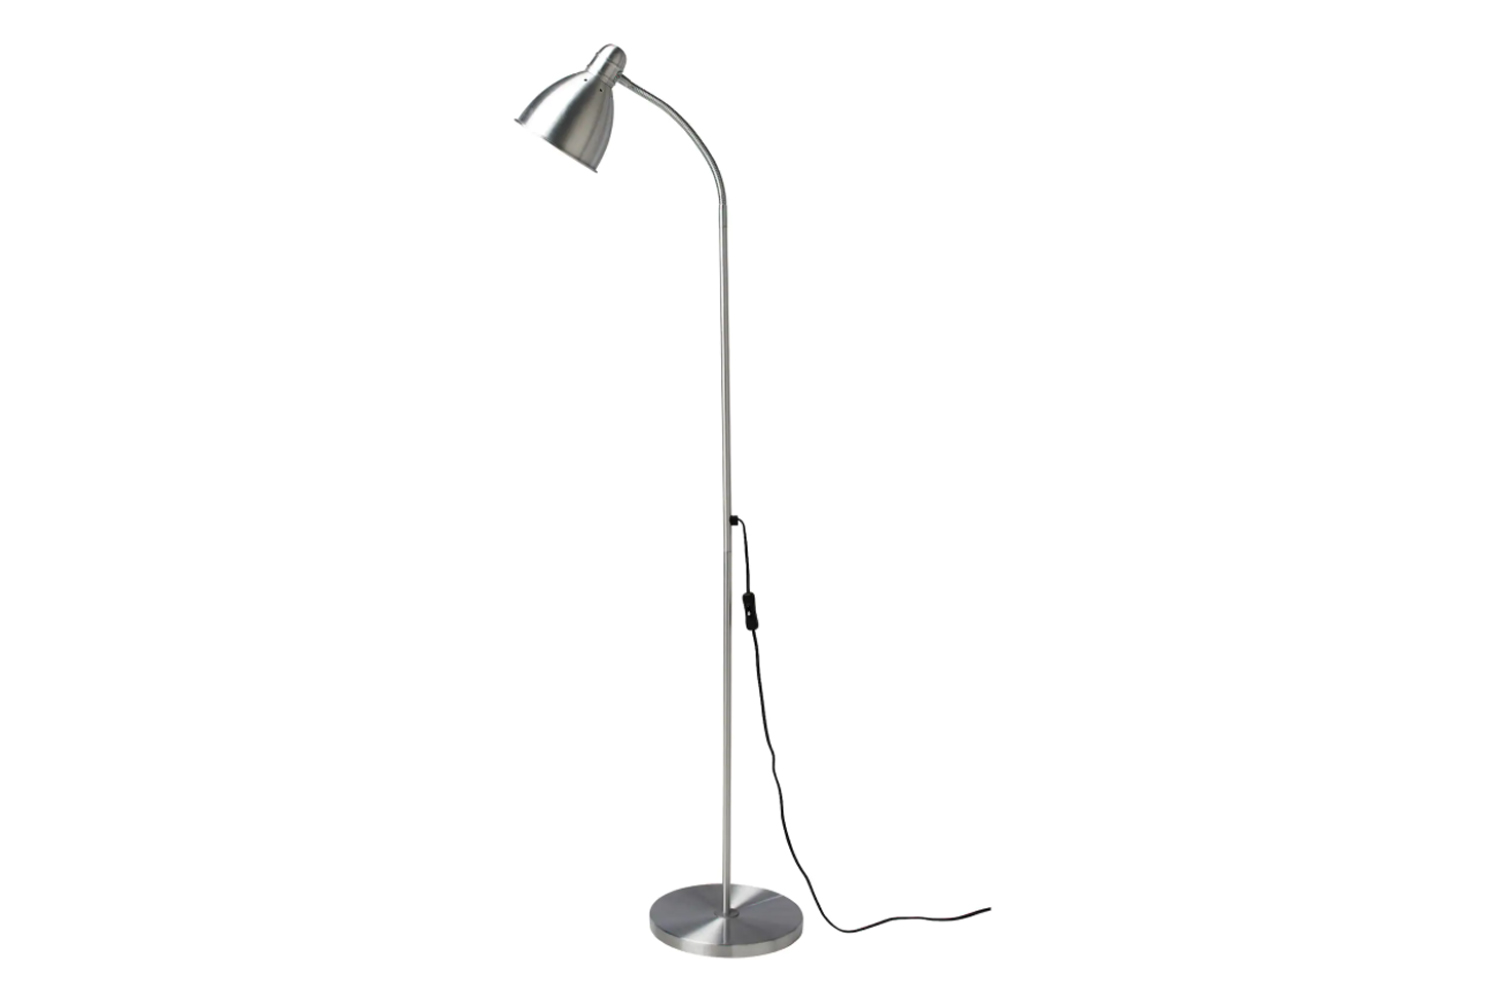 the ever affordable ikea lersta floor lamp is \$\14.99. 16